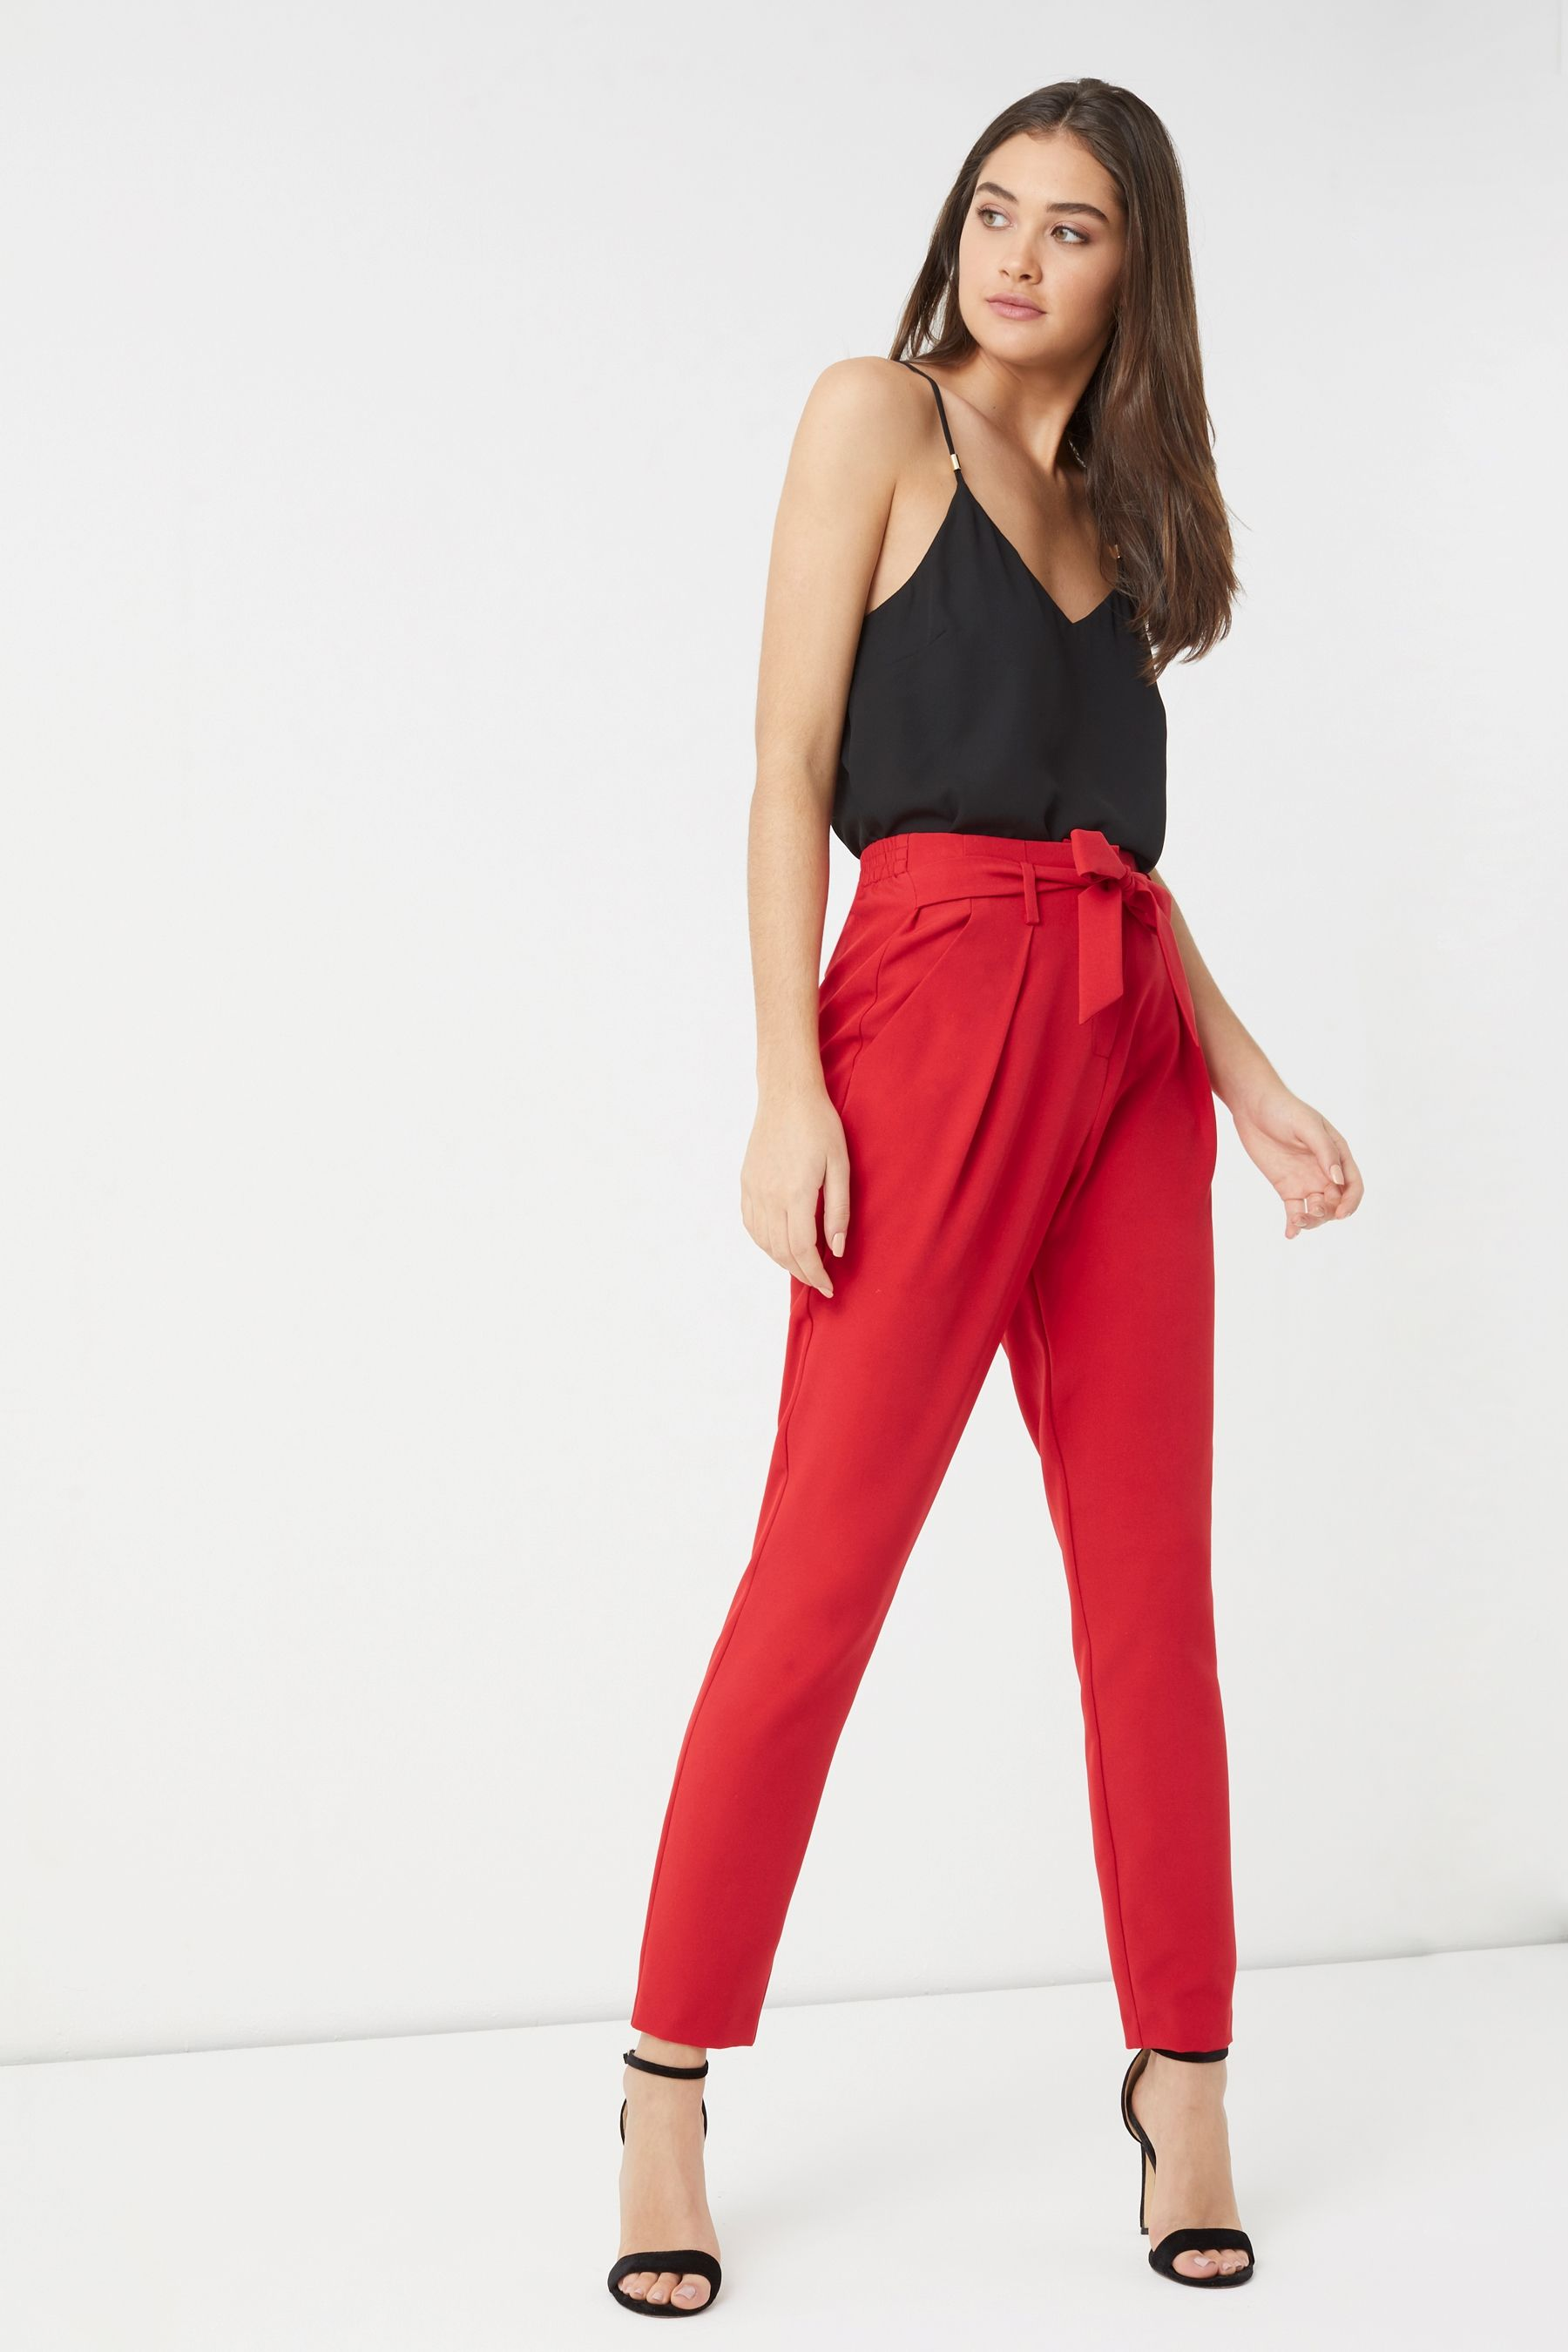 fec0bf27b151 Womens Lipsy Elasticated Back Tie Front Trouser - Red | Dream closet ...